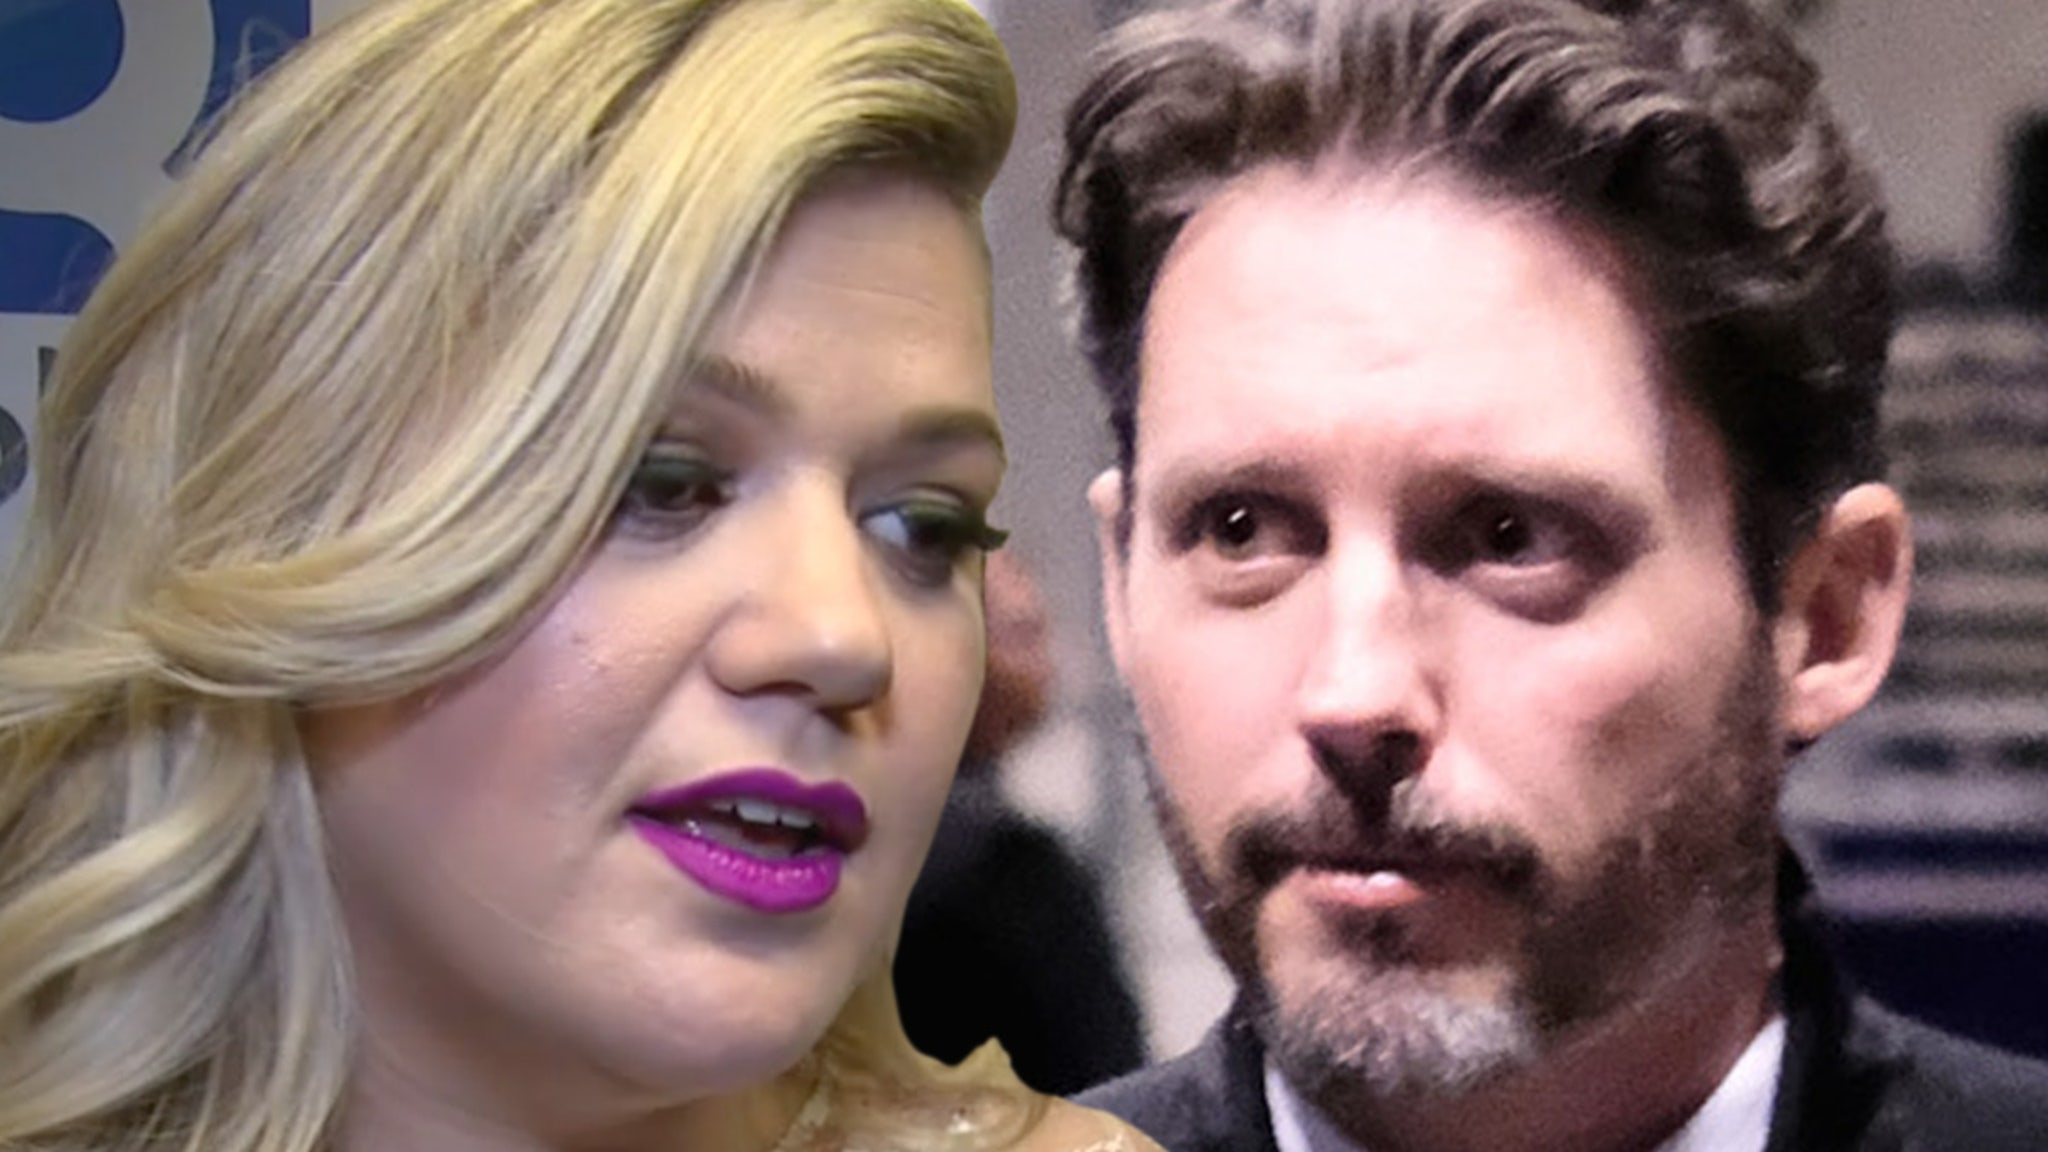 Kelly Clarkson Will Cover Most of Kids' Tuition, But Not Ex's Ranch Costs